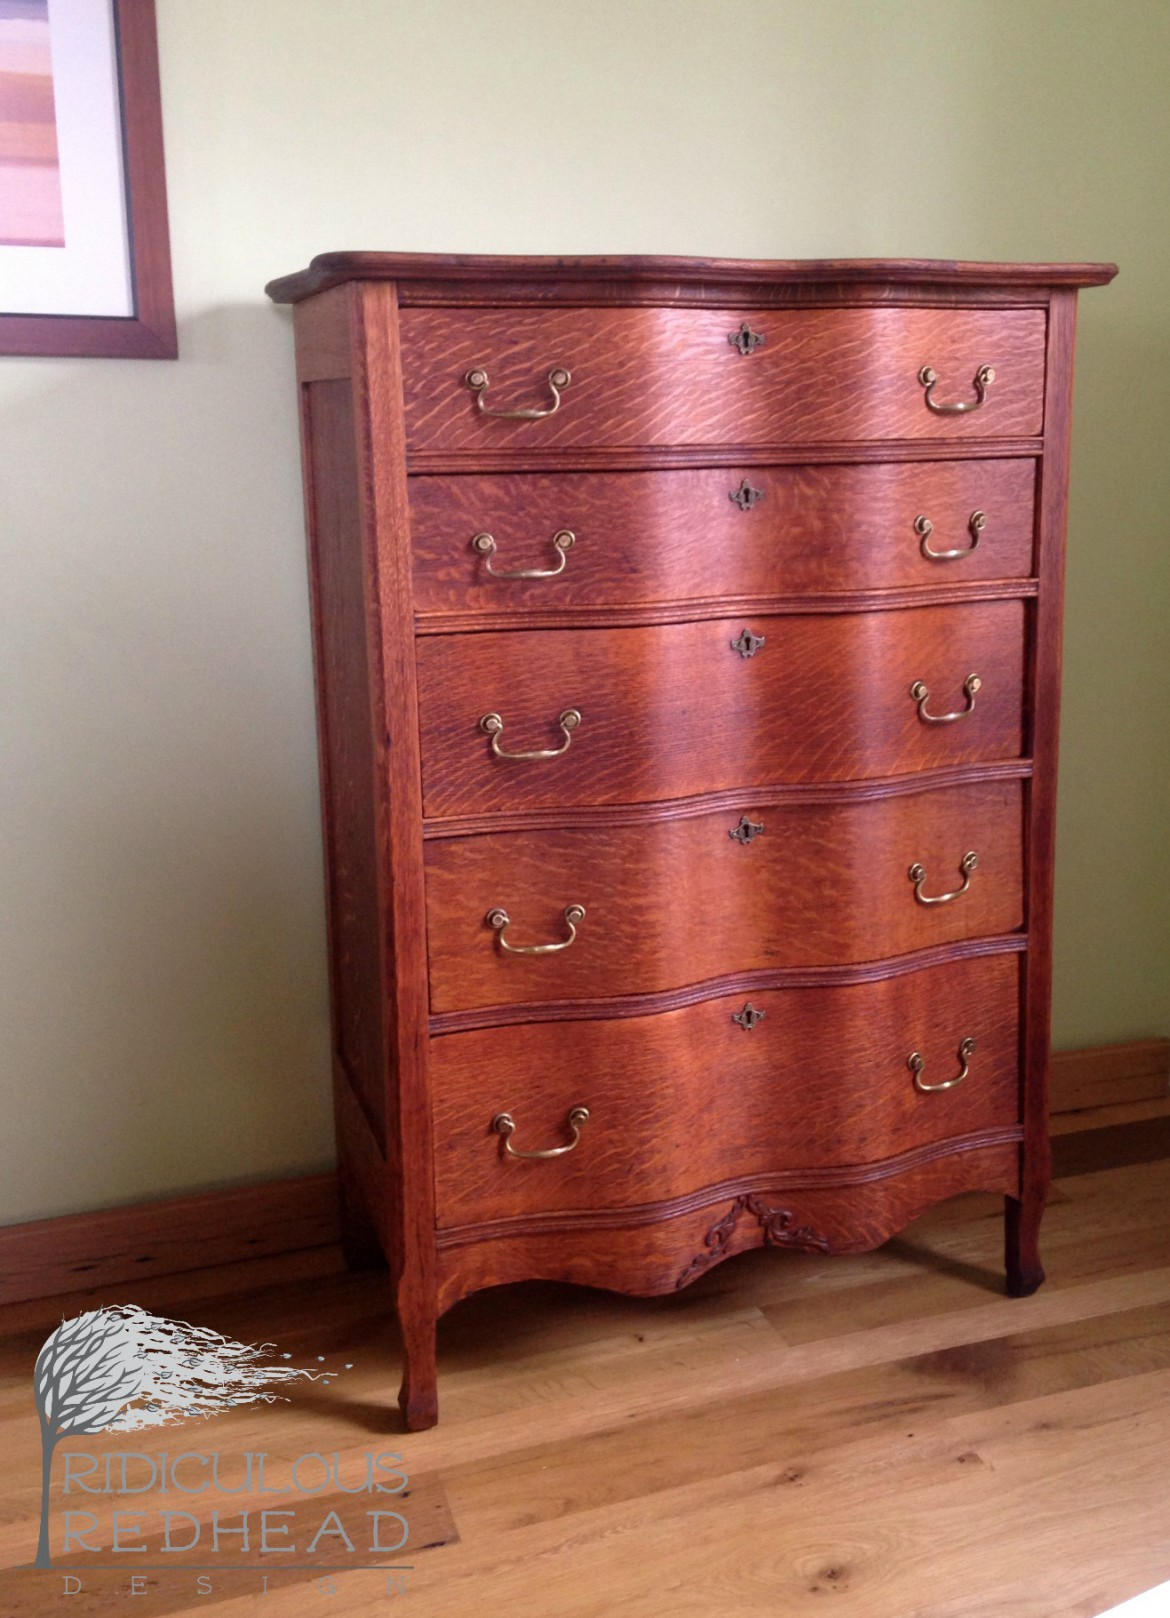 Ridiculous Redhead Wavy Oak Dresser After